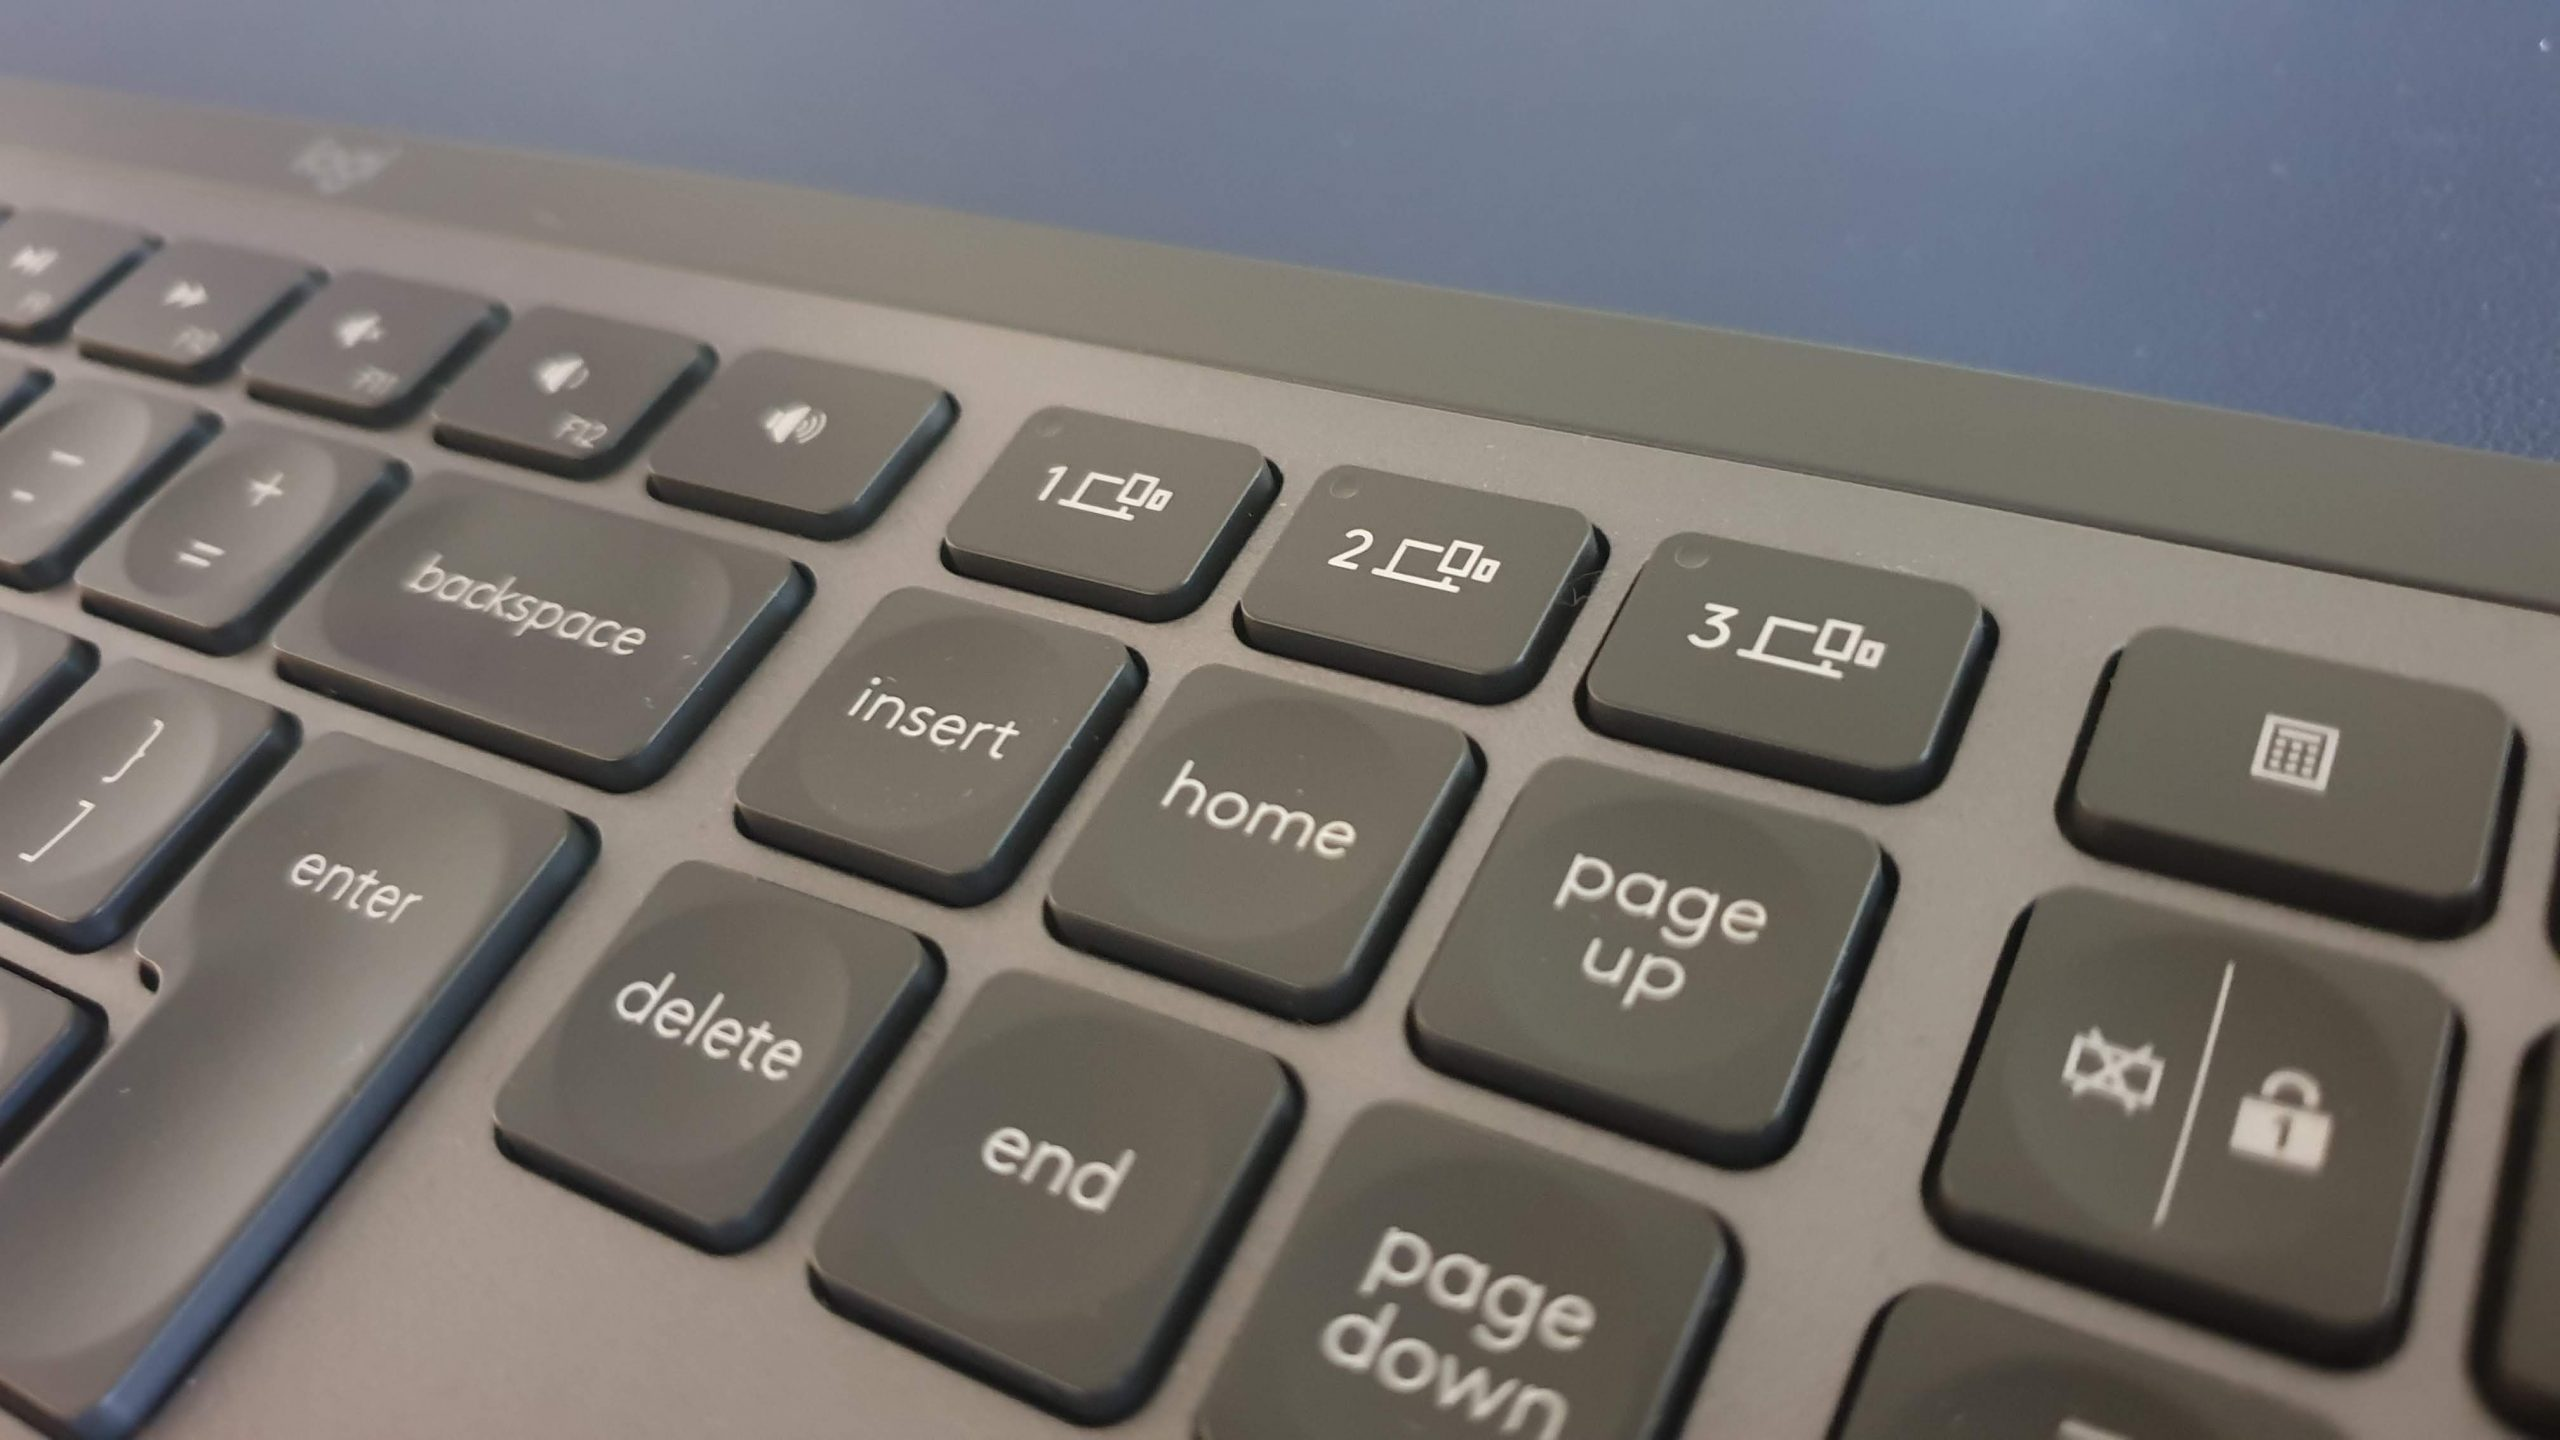 Logitech Mx Keys Review An Absolute Unit Of A Keyboard Thoughtsnack